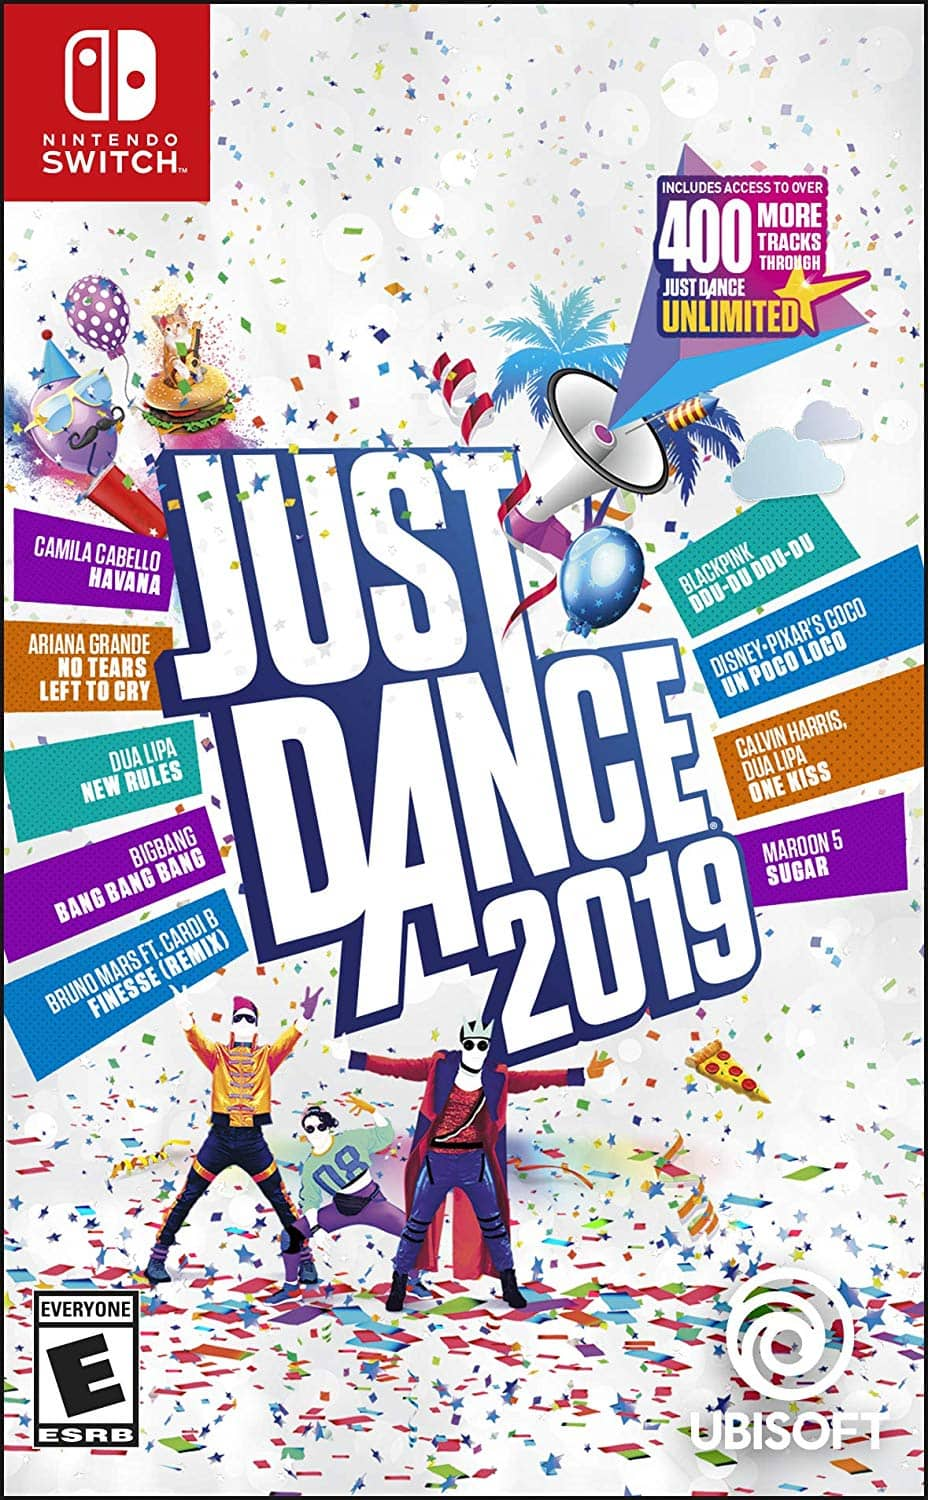 Just Dance 2019 (Nintendo Switch, PS4, Xbox One, Xbox 360, Wii) $29.88 + Free Shipping